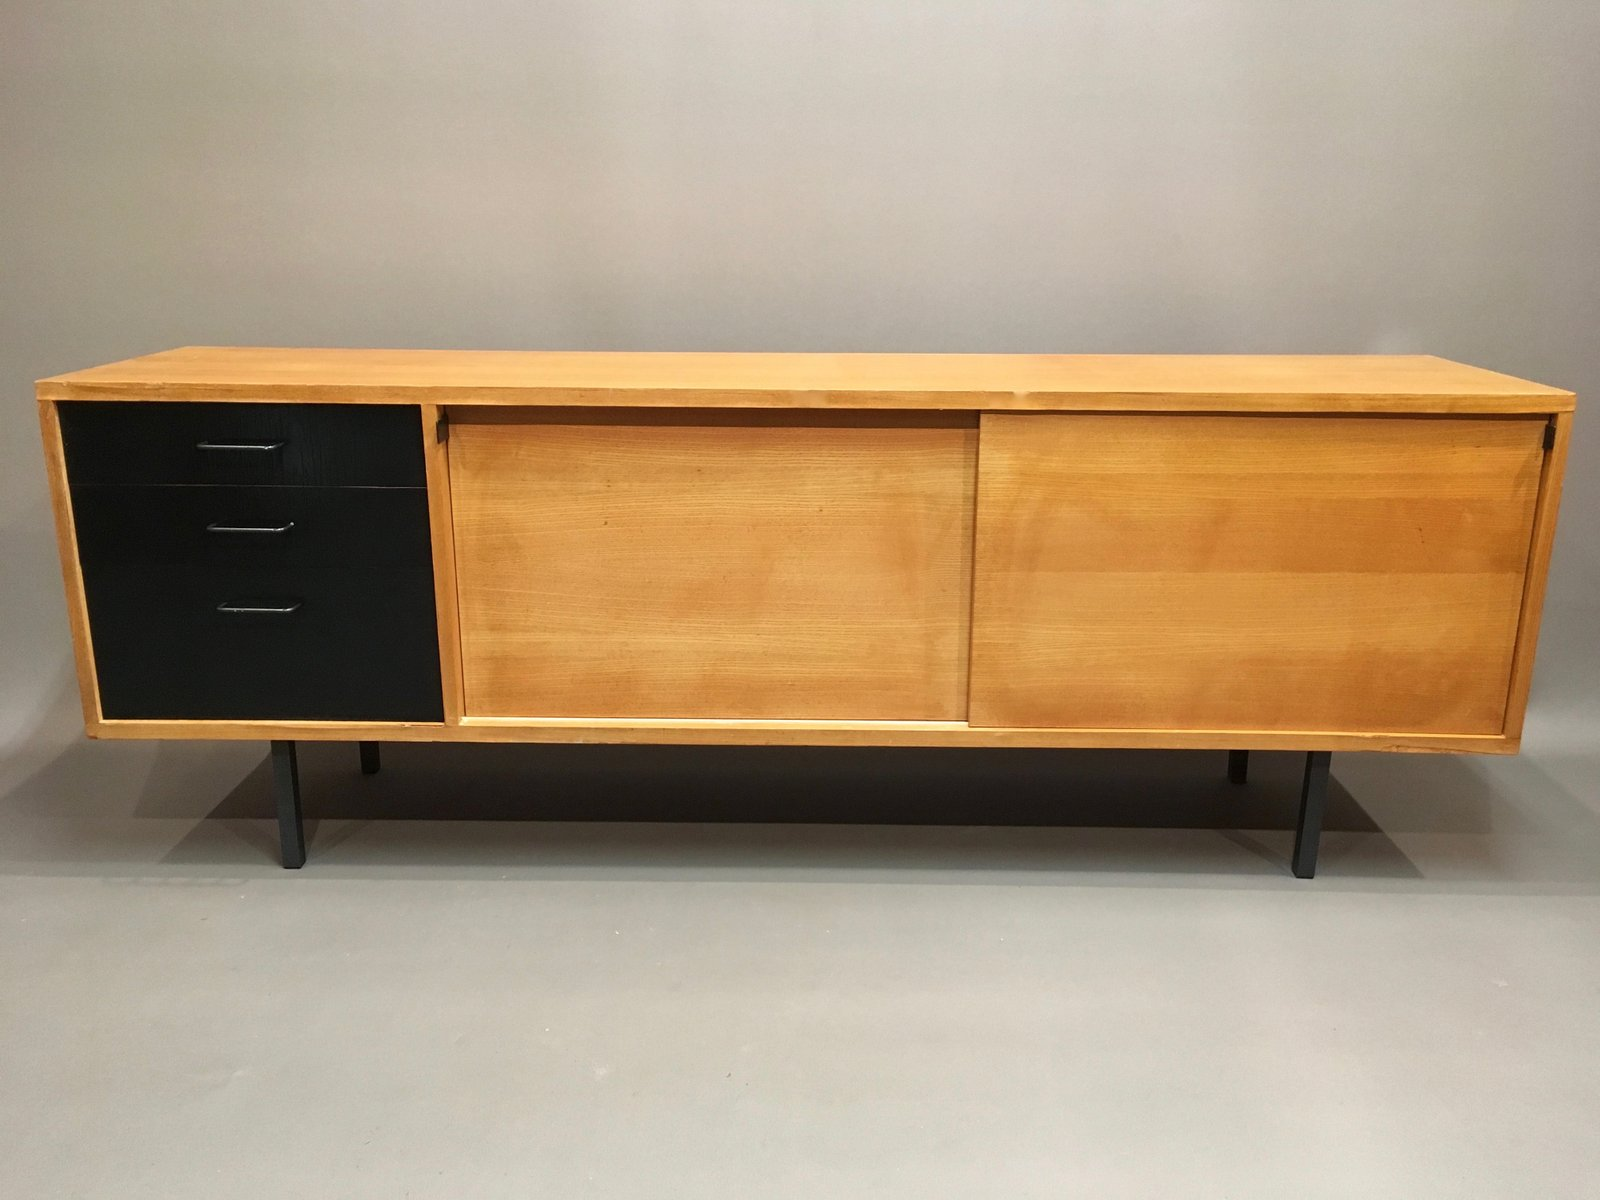 oak and metal sideboard s for sale at pamono - oak and metal sideboard s